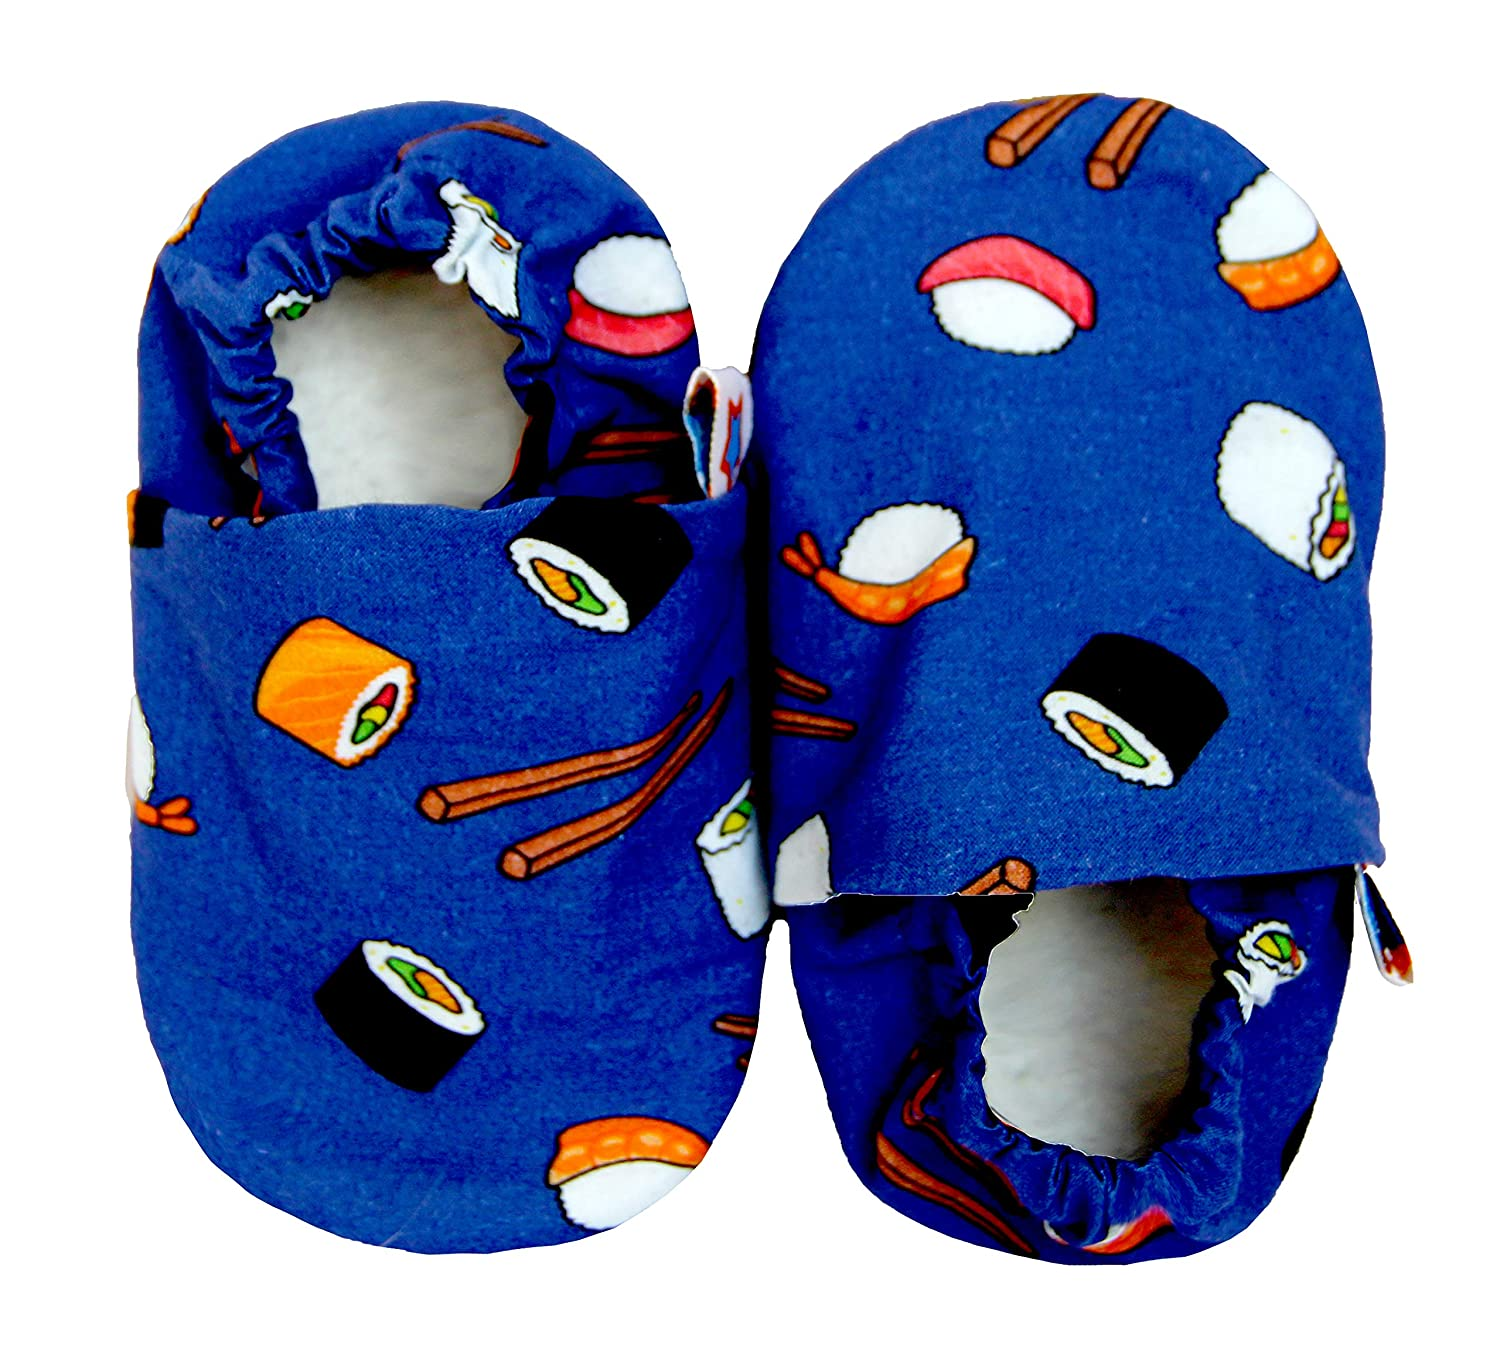 SKIPS Cotton Soft Sole Shoes, Best Baby Soft Sole Prewalkers Baby Toddler Shoes Cattle Cashmere Shoes Baby Girls Boys, Crib Shoes - Sushi Print